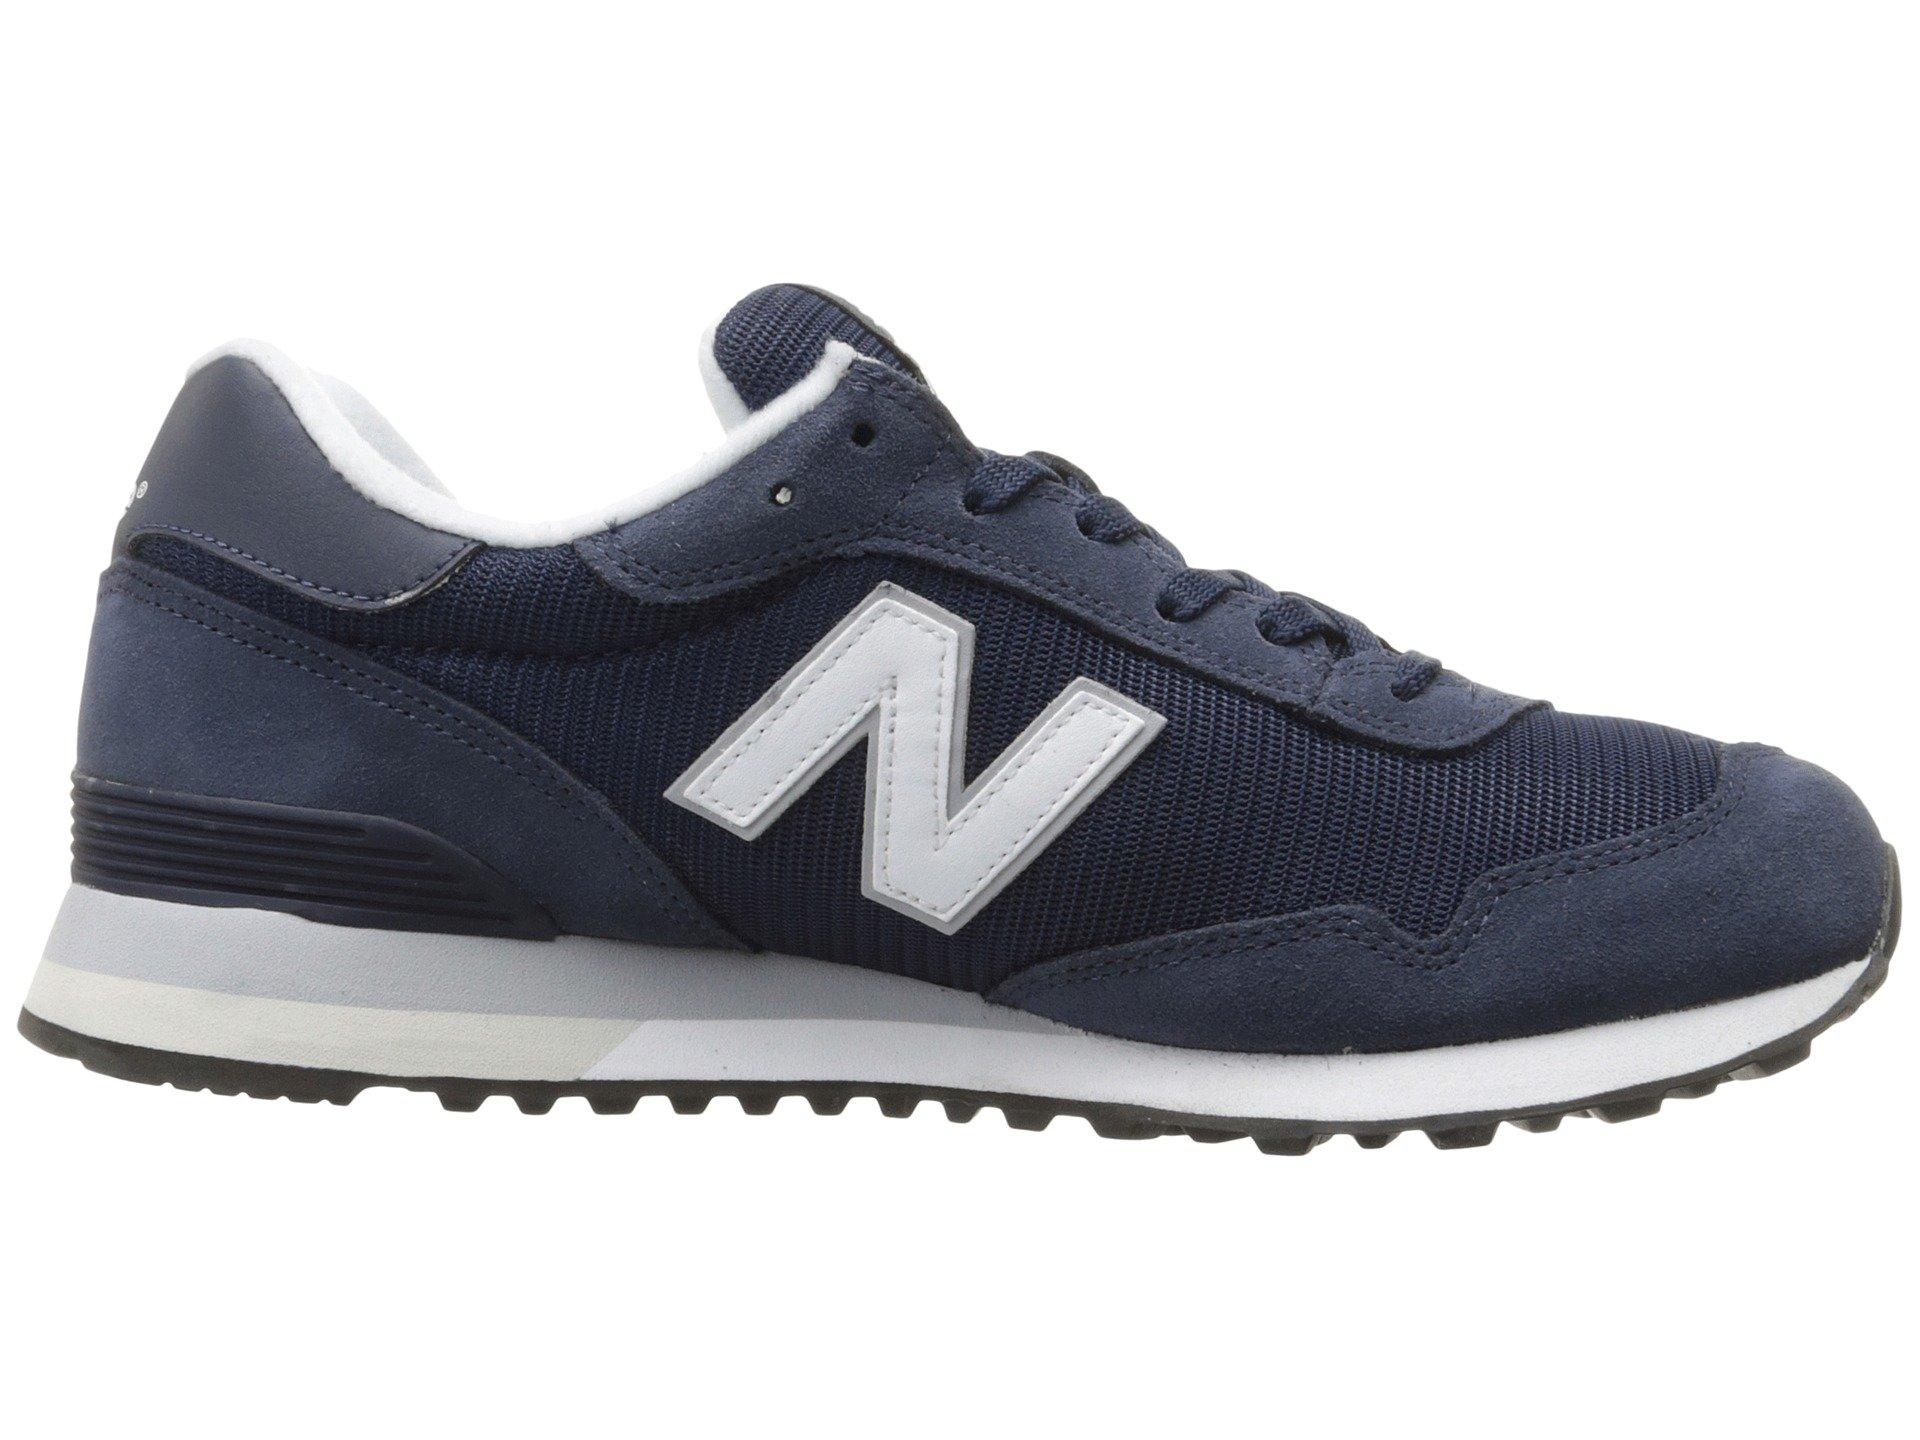 New Balance Suede Ml515 (navy/white 2) Men's Classic Shoes in Blue ...